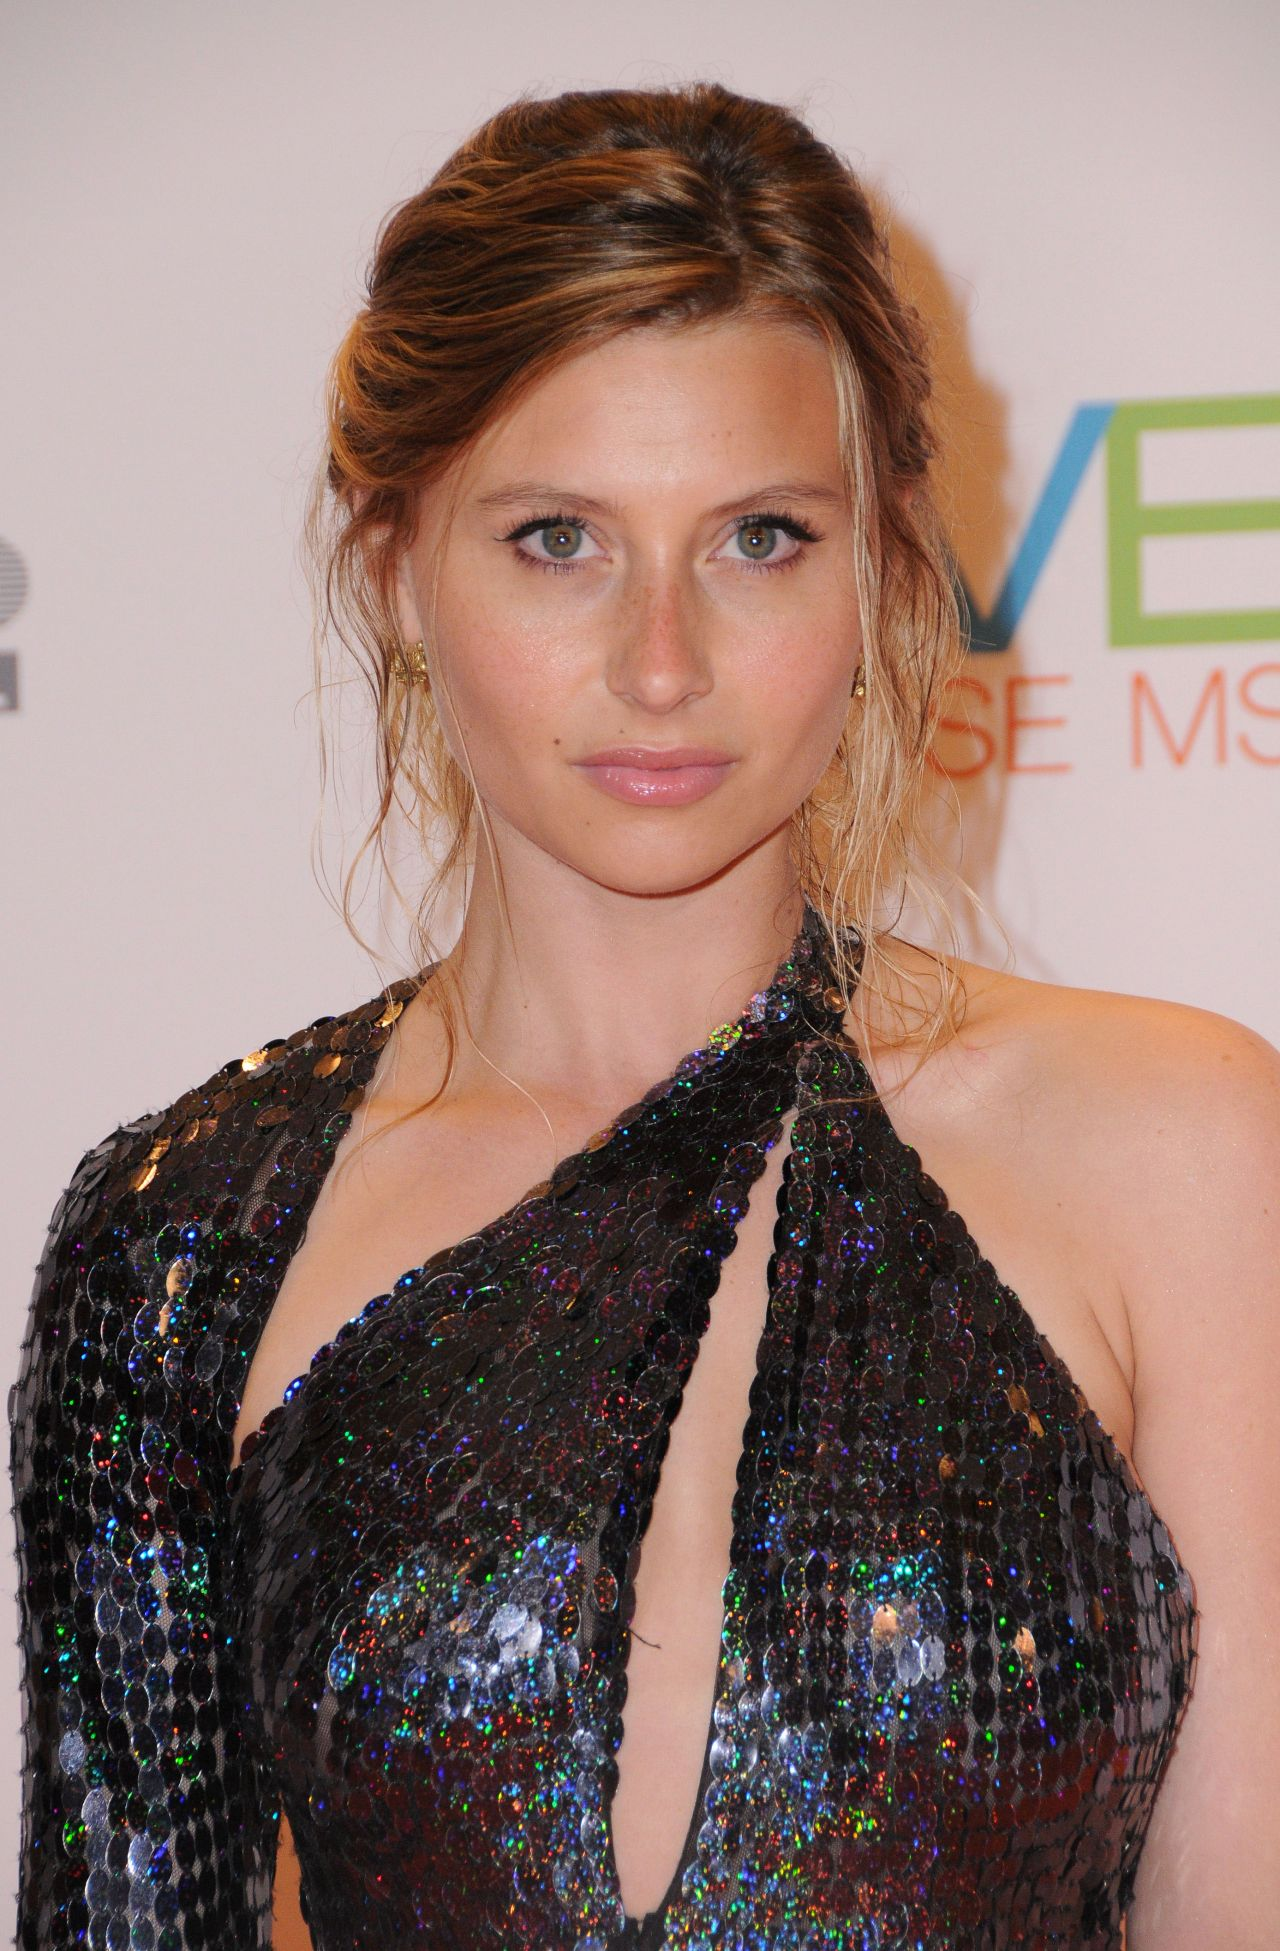 Alyson Aly Michalka Race To Erase Ms Gala In Beverly